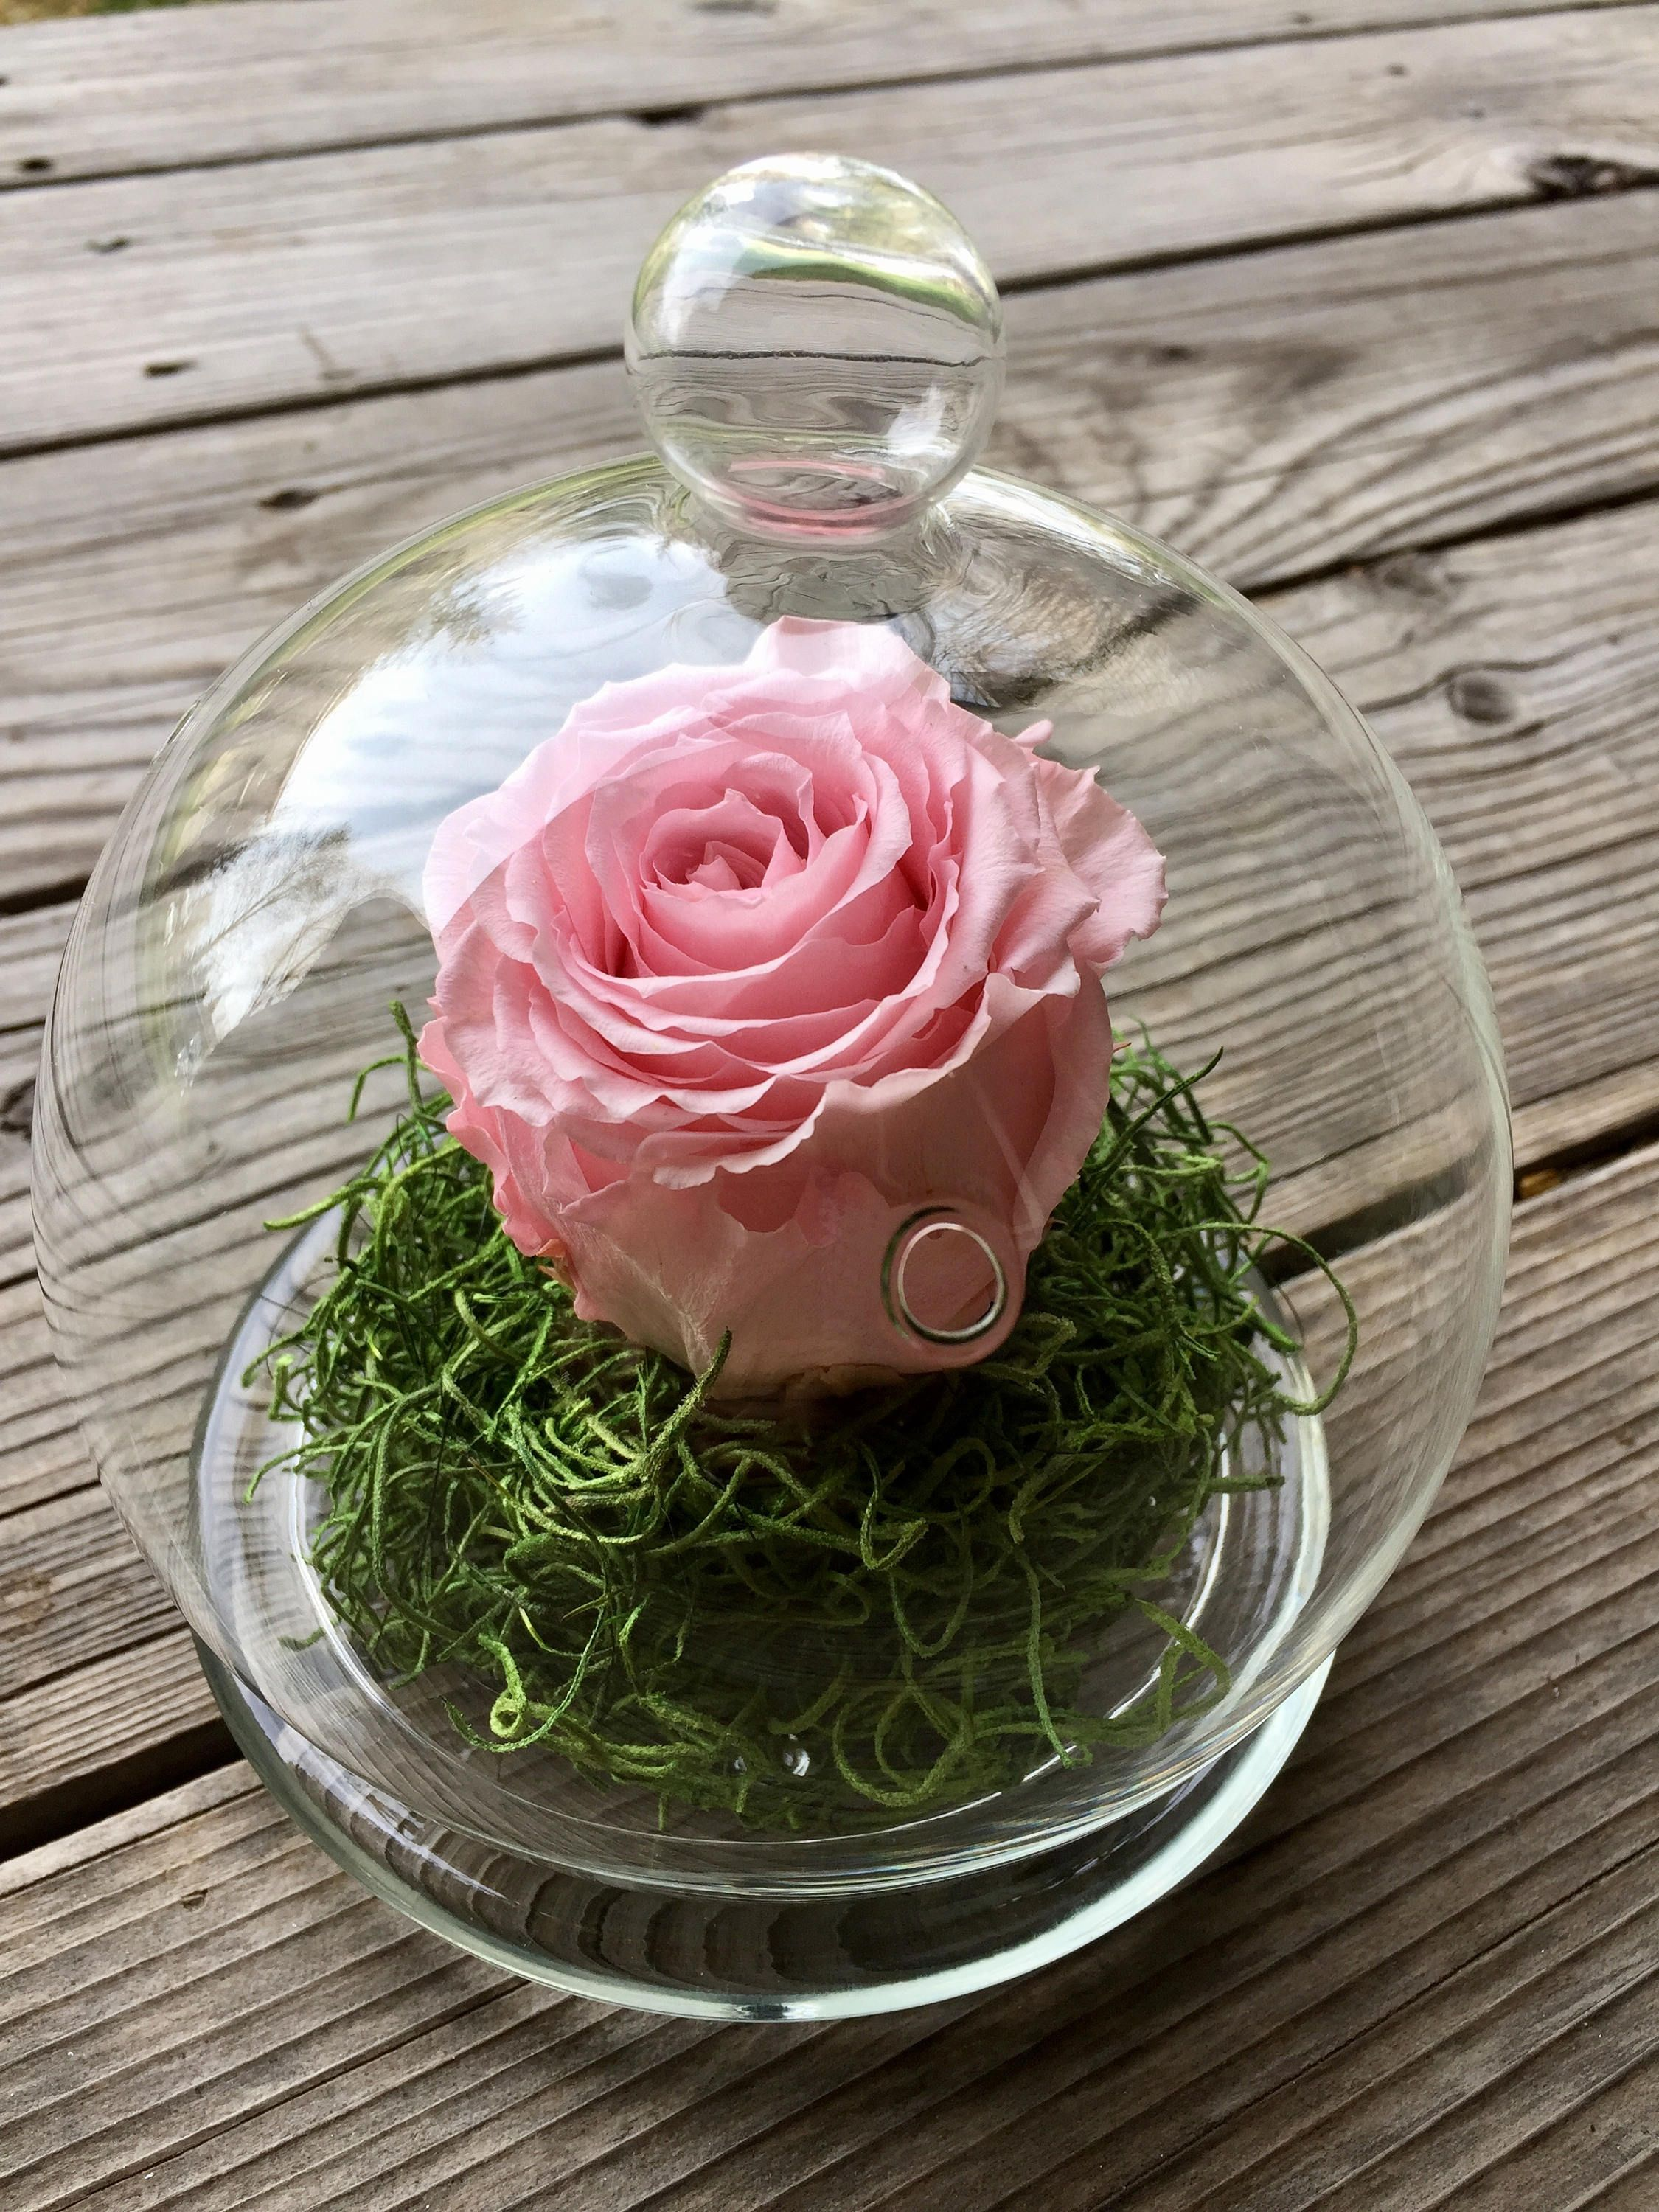 Preserved Rose In A Glass Cloche By Tetonboutique On Etsy How To Preserve Flowers Preserved Roses Arrangement Flower Box Gift